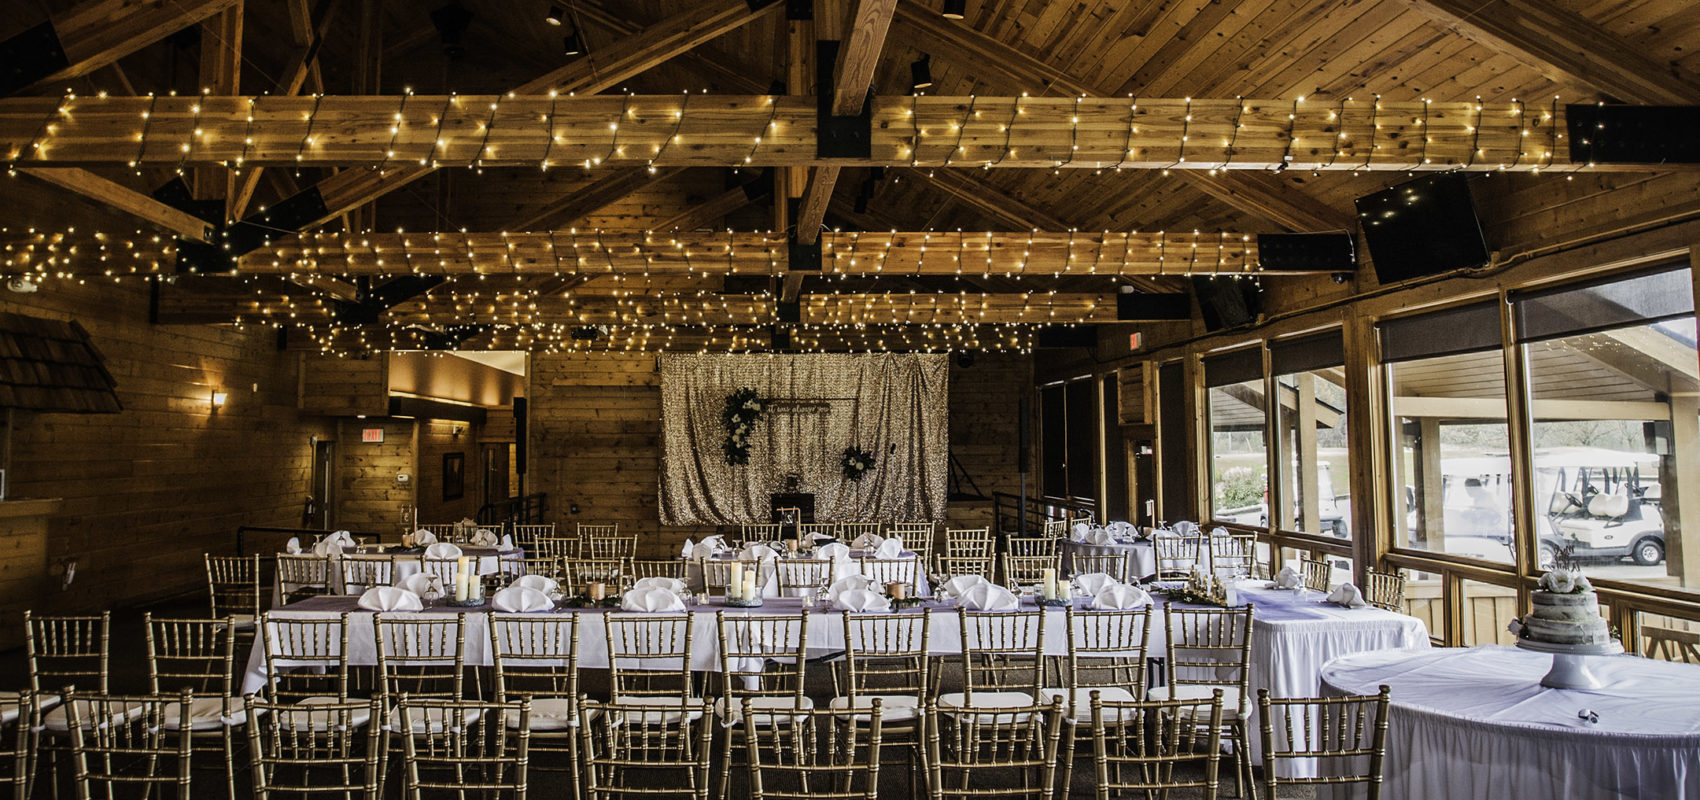 Michigan Wedding Venues.Michigan Barn Wedding Myth Wedding Venues Banquets And Ceremonies